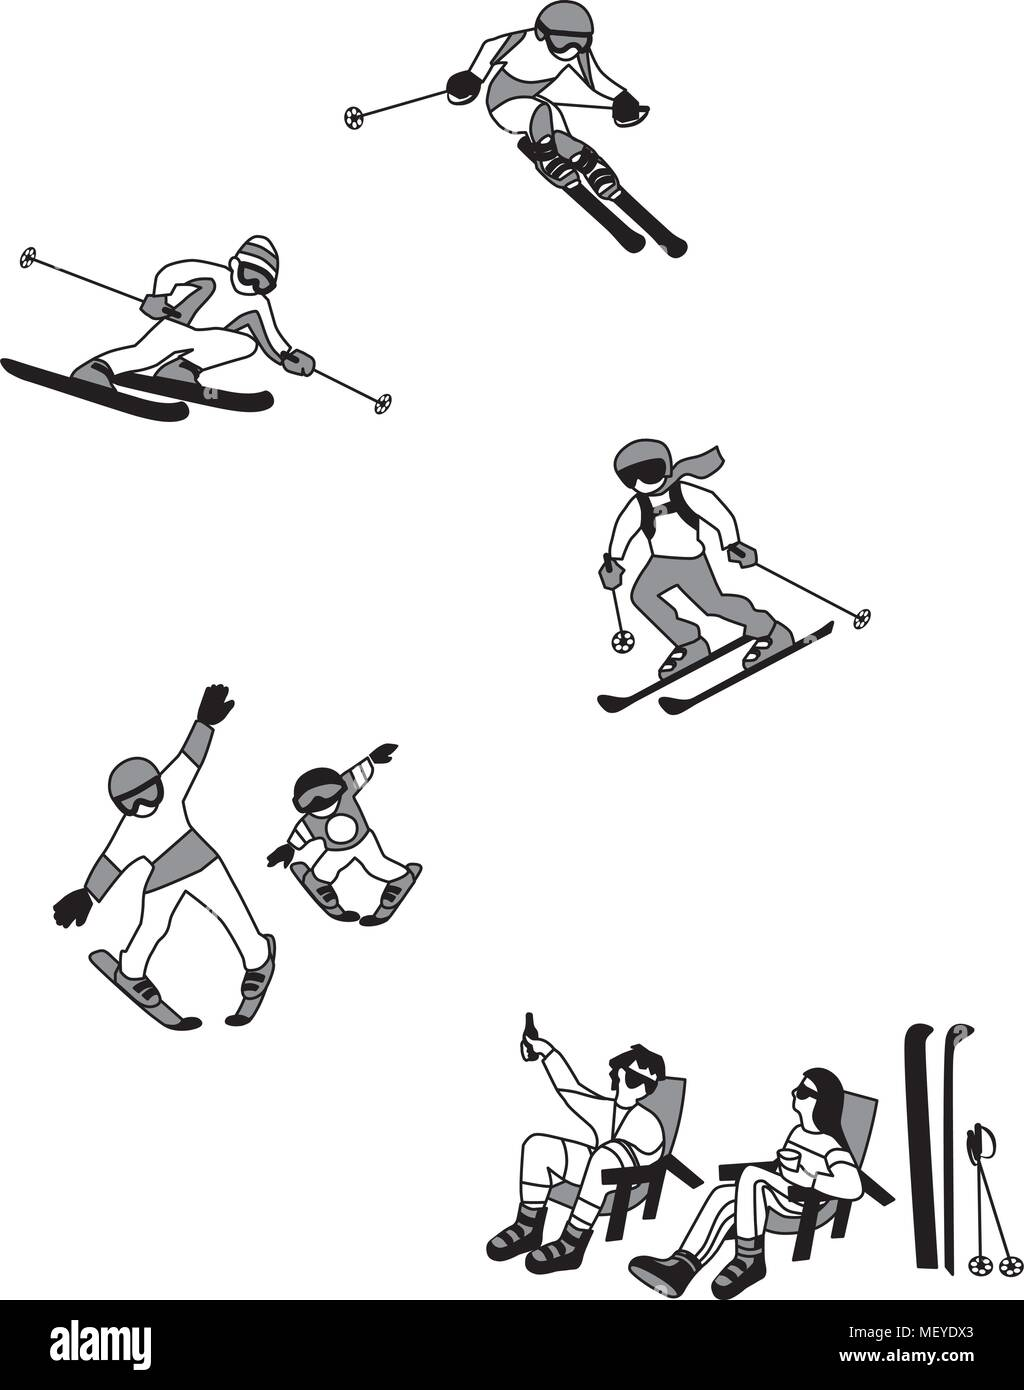 Vector Illustration Of Alpine Skiing Winter Sport Characters Set Of Simple Comic Drawing Stock Vector Image Art Alamy